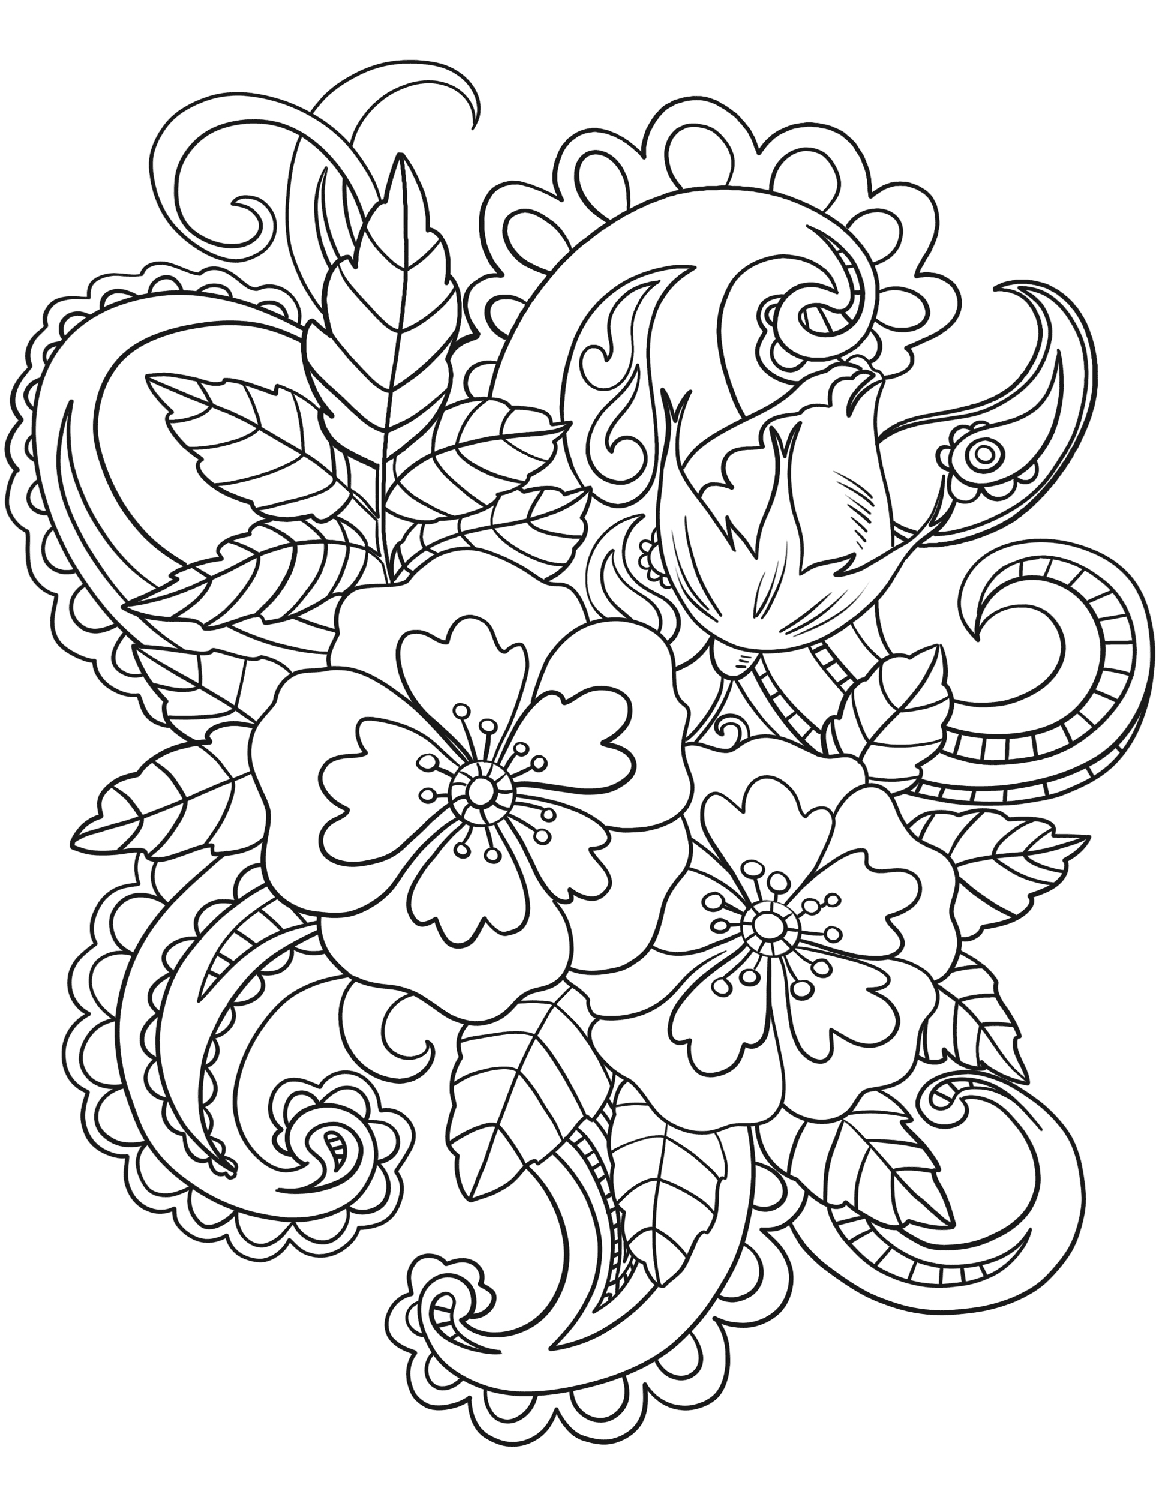 patterns to color in 15 crazy busy coloring pages for adults free coloring color patterns in to